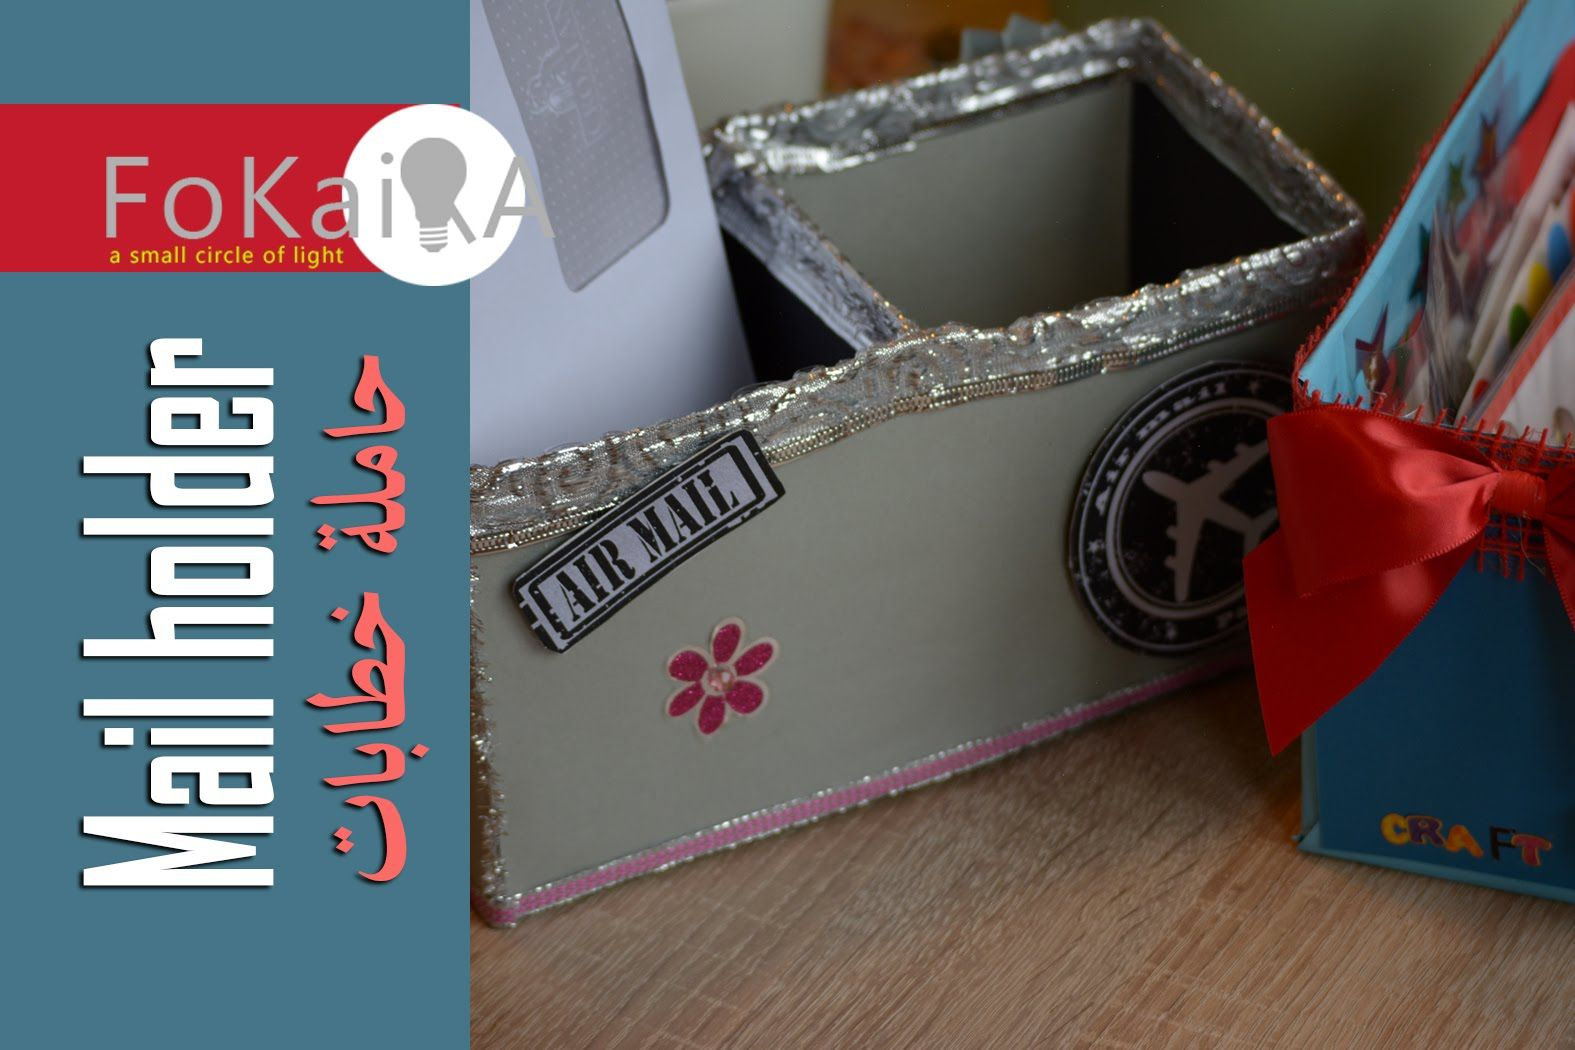 Recycle Of Tissue Boxes الفكيرة 91 اعادة تدوير علب المناديل Tissue Boxes Recycling Tissue